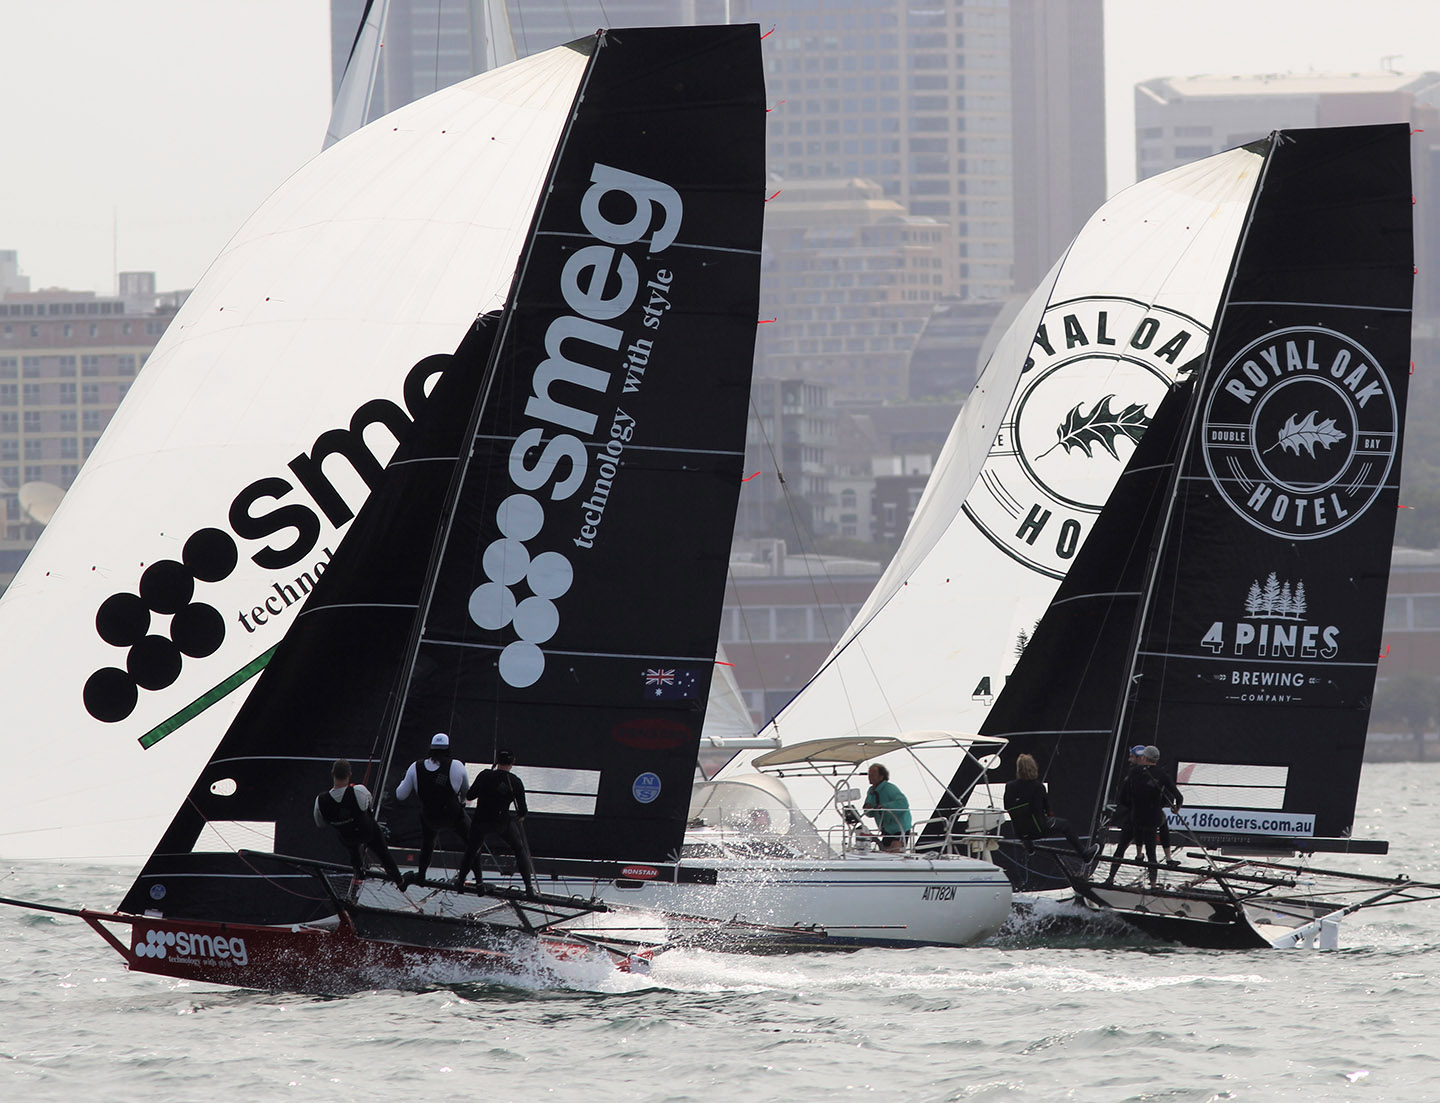 A-yacht-is-caught-in-an-18ft-skiff-sandwich-between-two-JJ-top-contenders